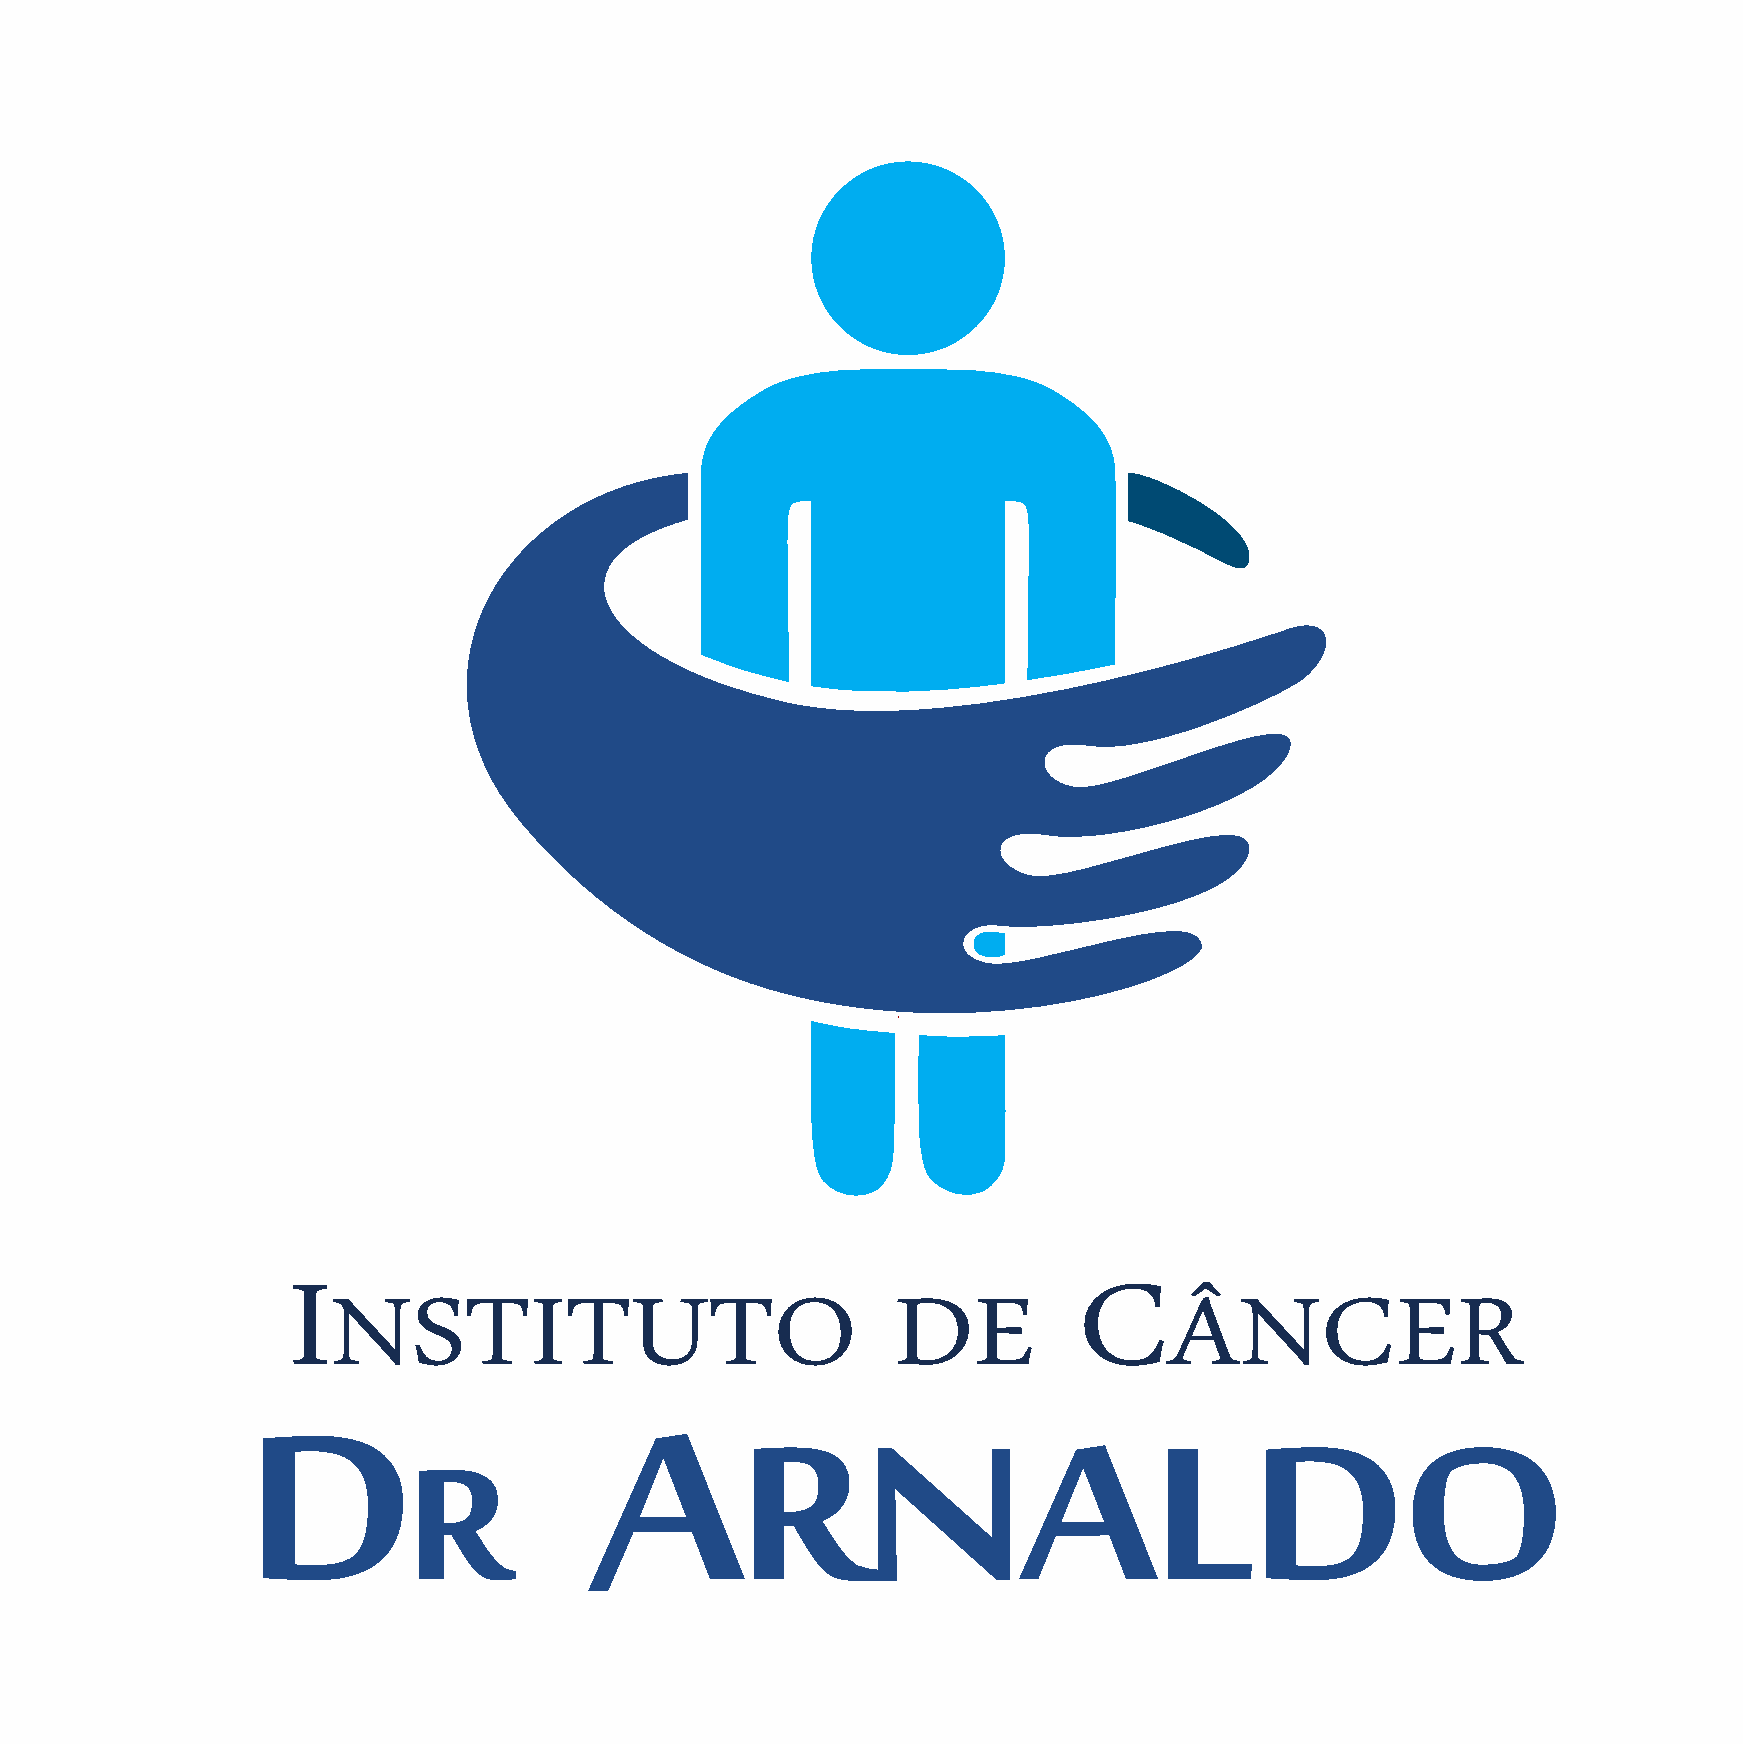 Instituto de Câncer Dr. Arnaldo